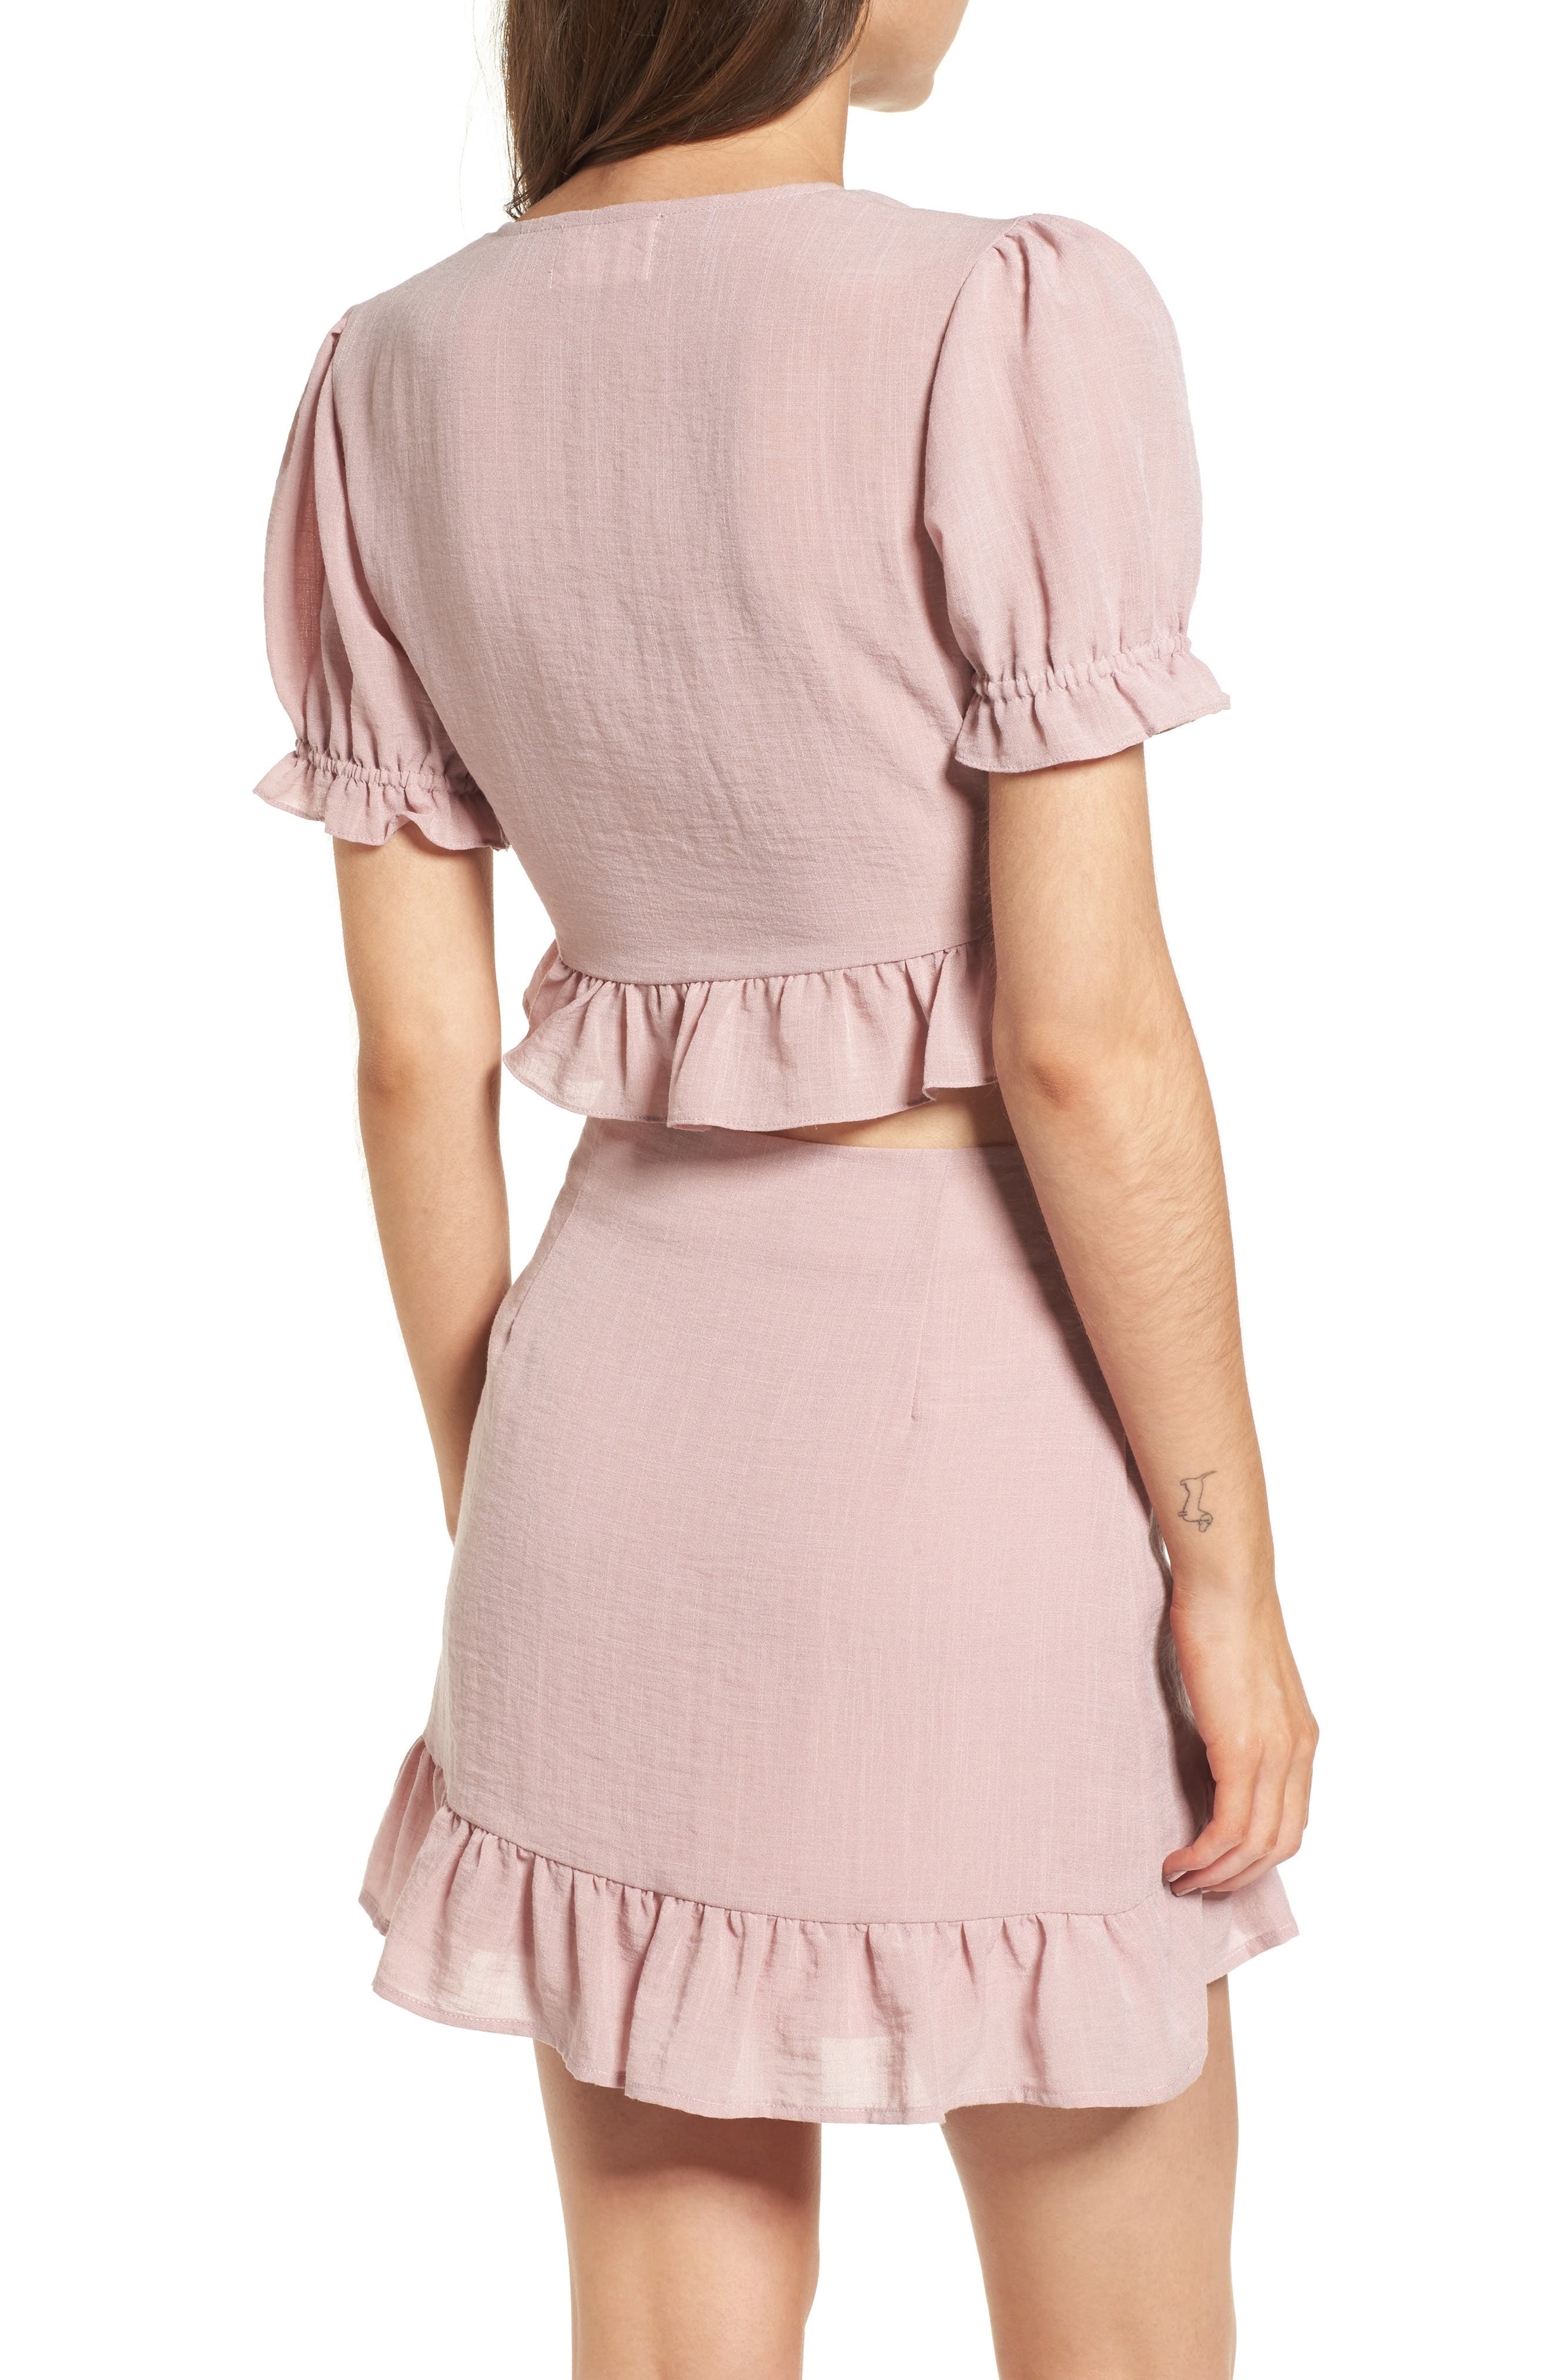 LOST + WANDER, Peony Ruffle Tie Front Crop Top, Alternate thumbnail 2, color, 681